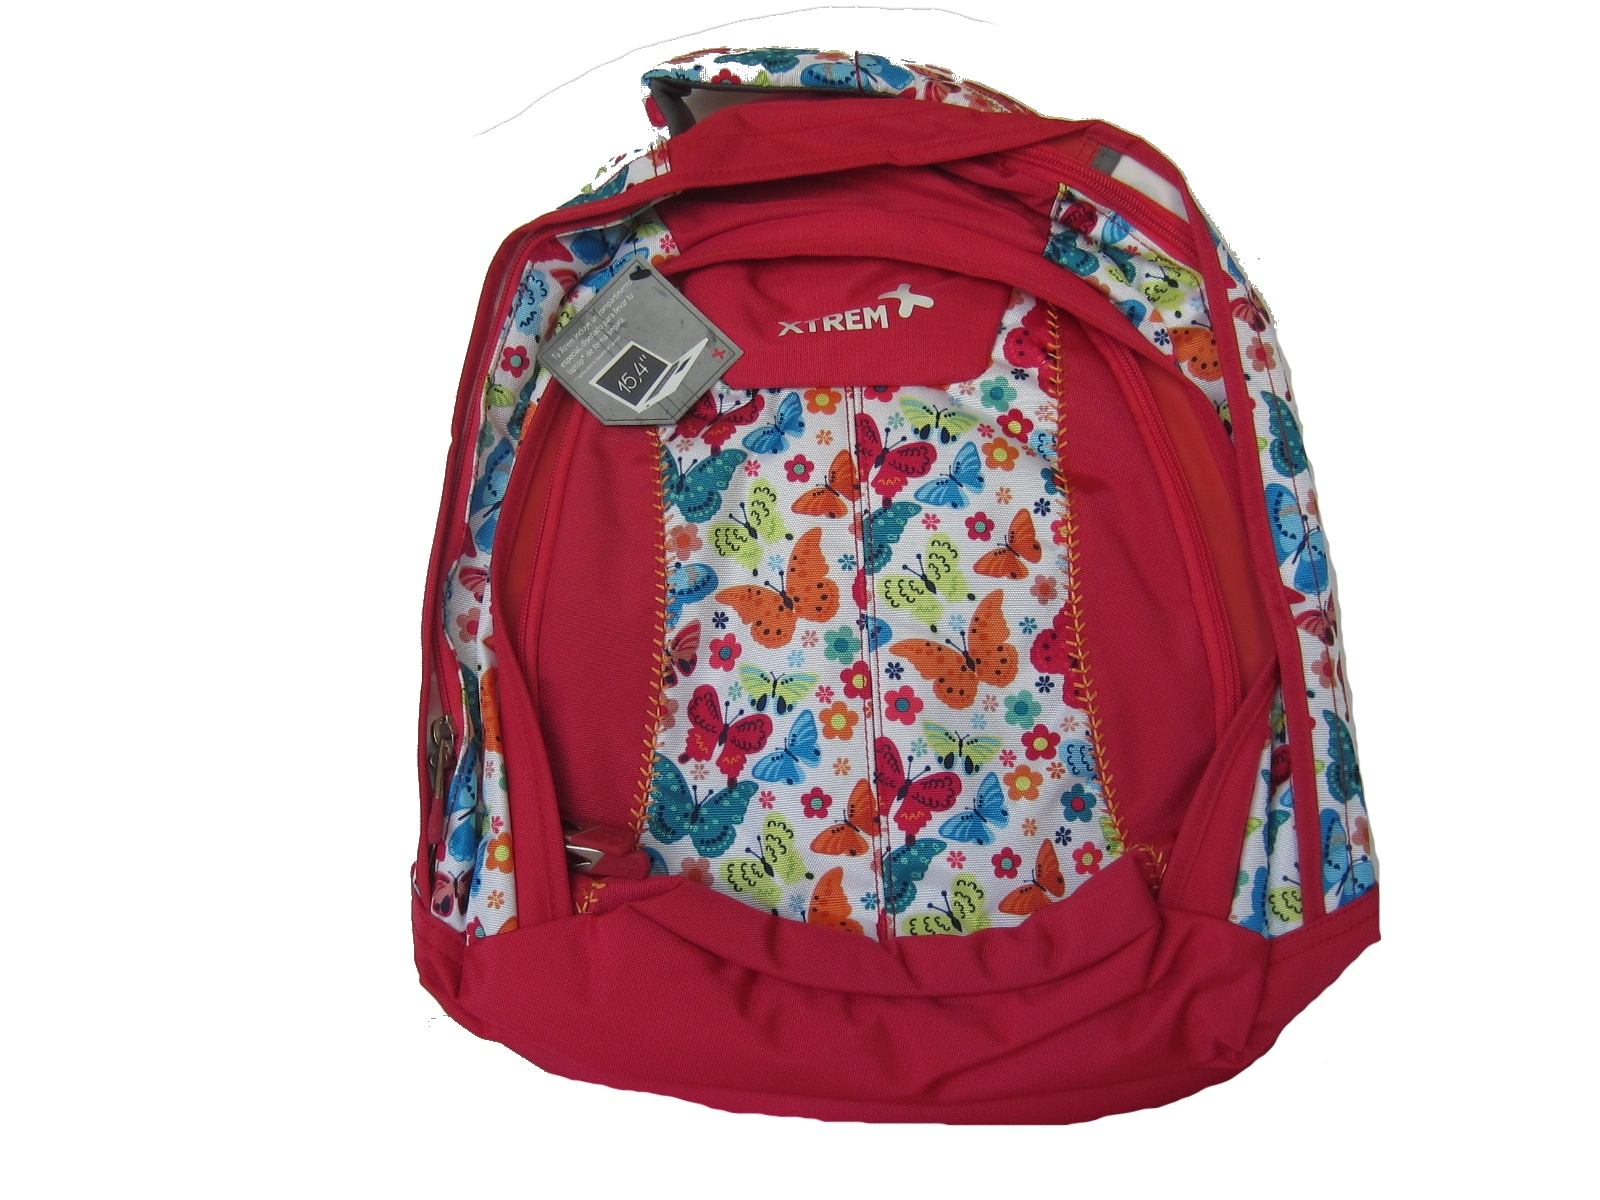 MUVIT 716 BACKPACK BUTTERFLY 87581-2194